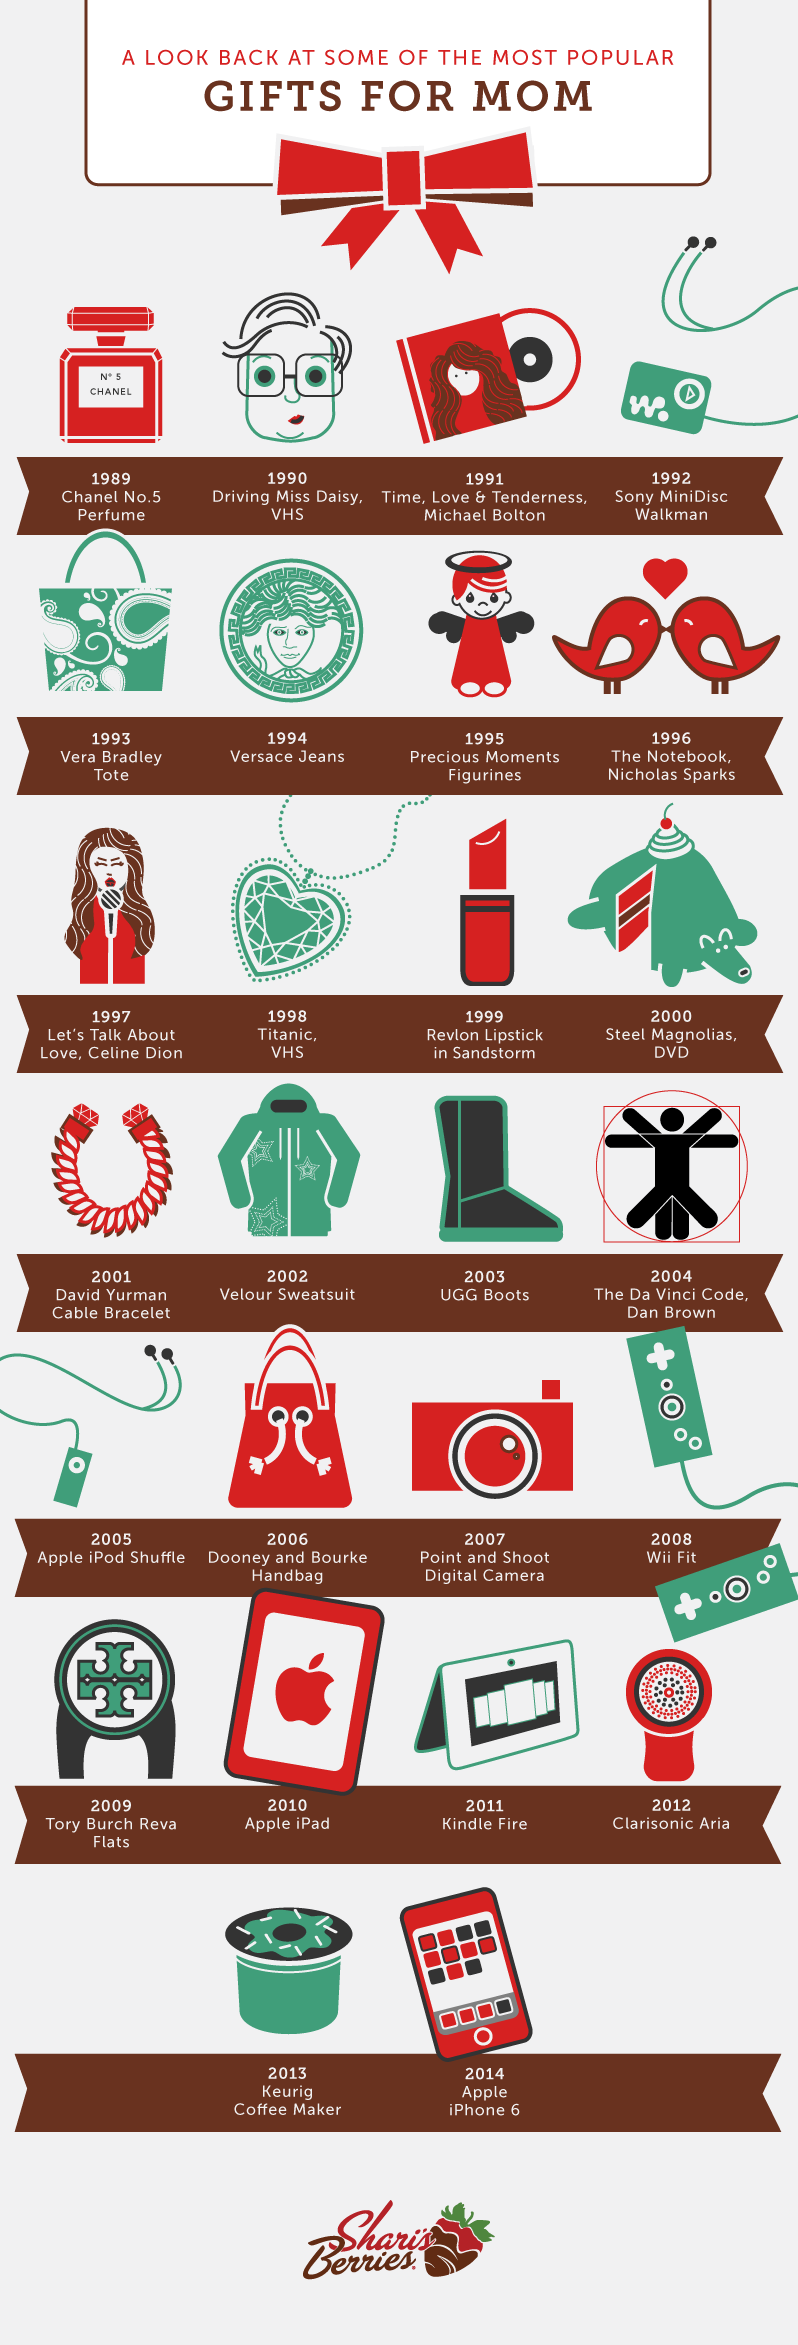 Popular Gifts For Mom In The Last 25 Years - Infographic by Berries.com